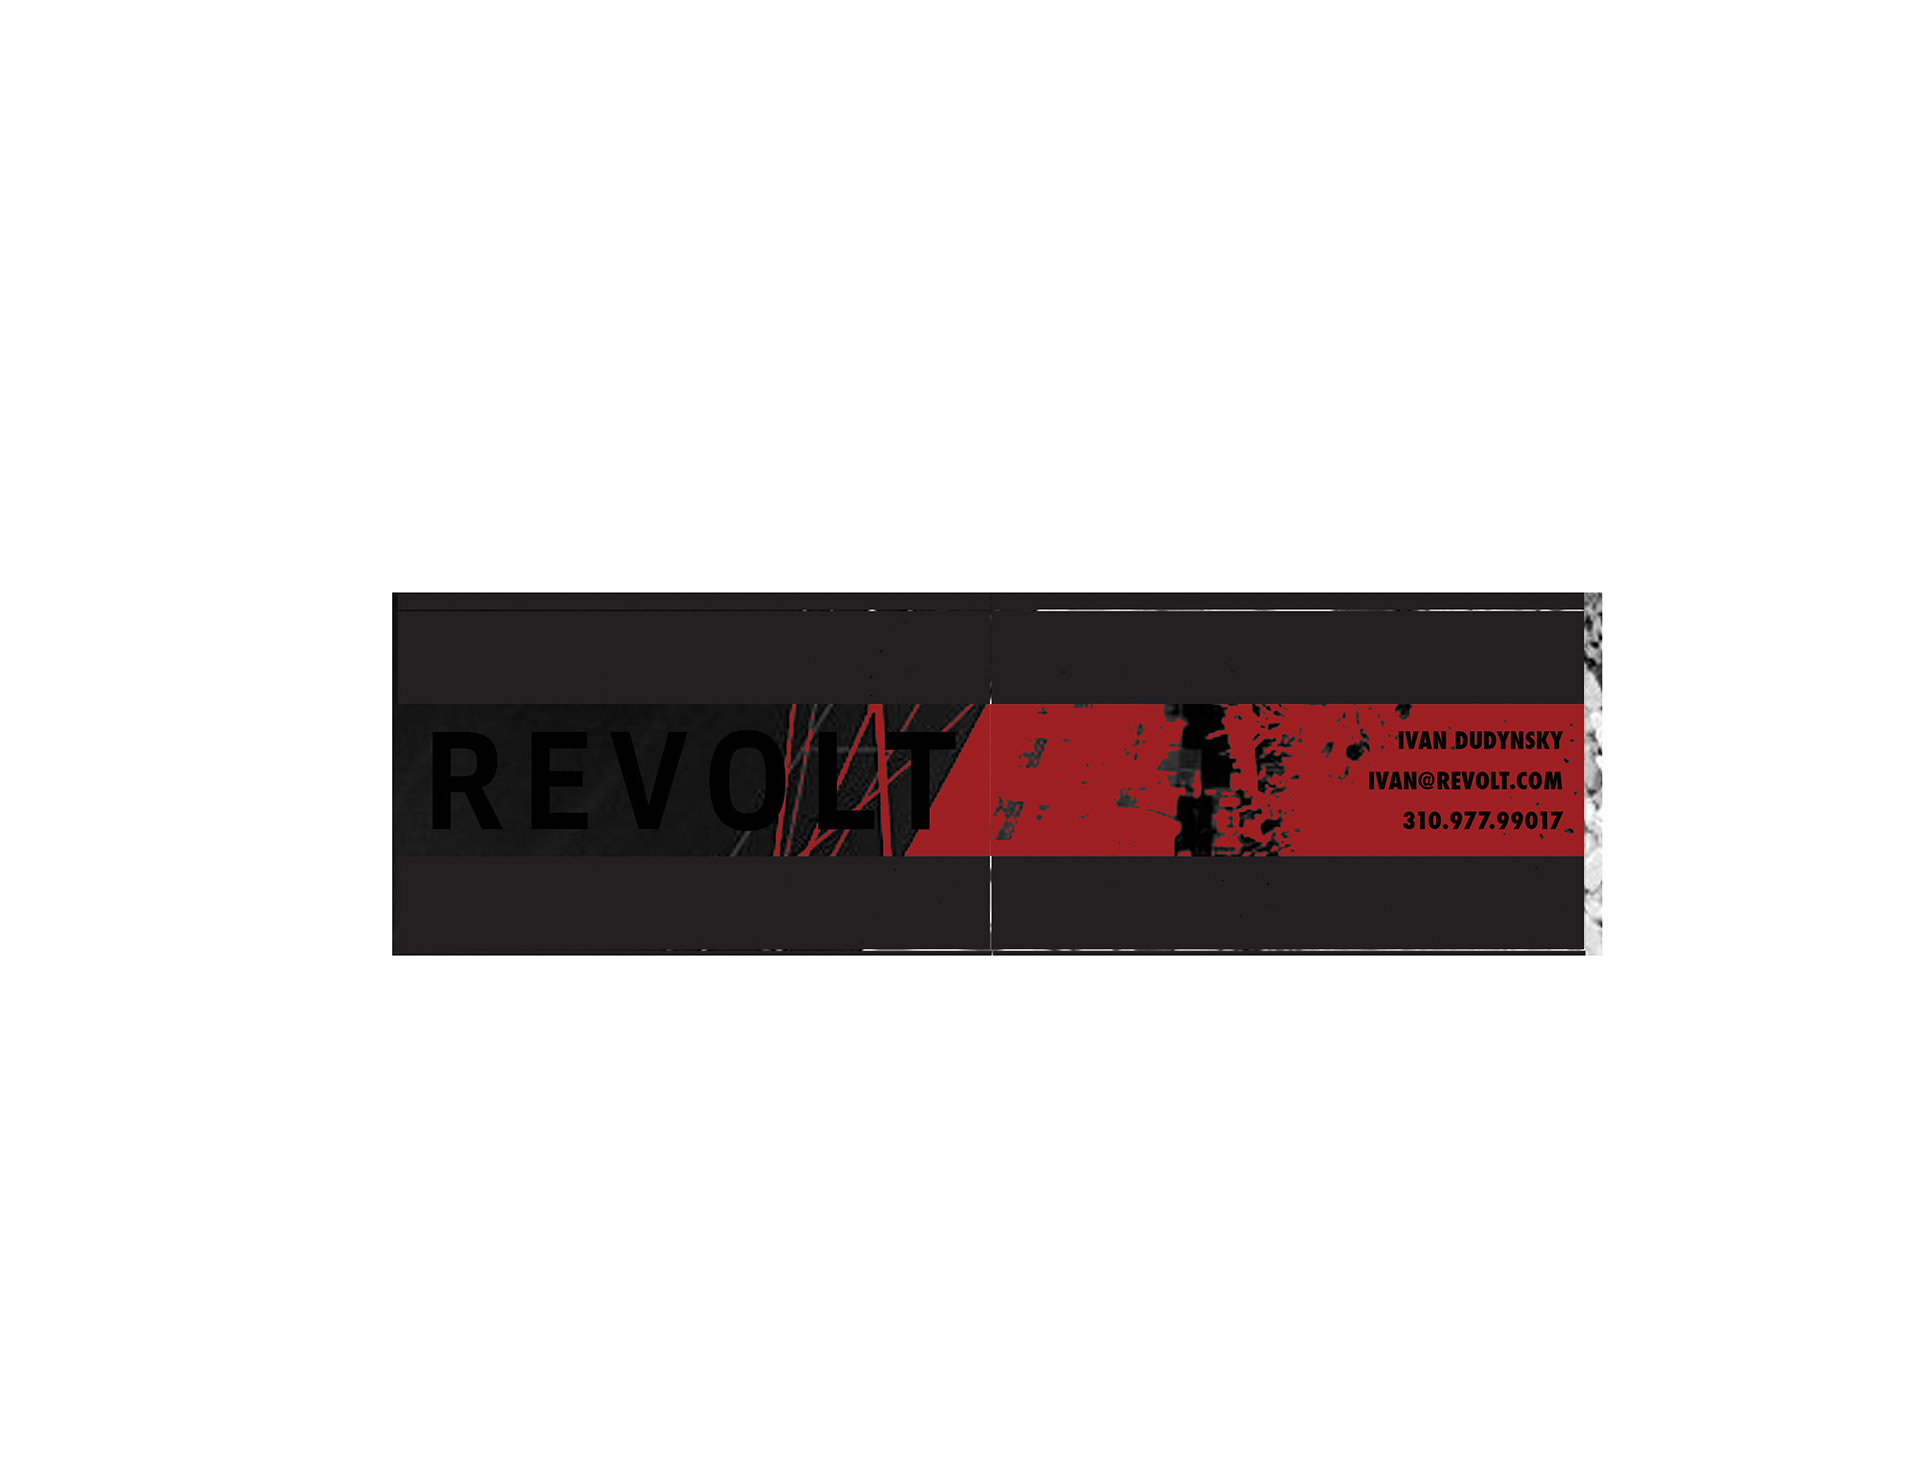 Rafael Amador - REVOLT TV Business Card Ideas